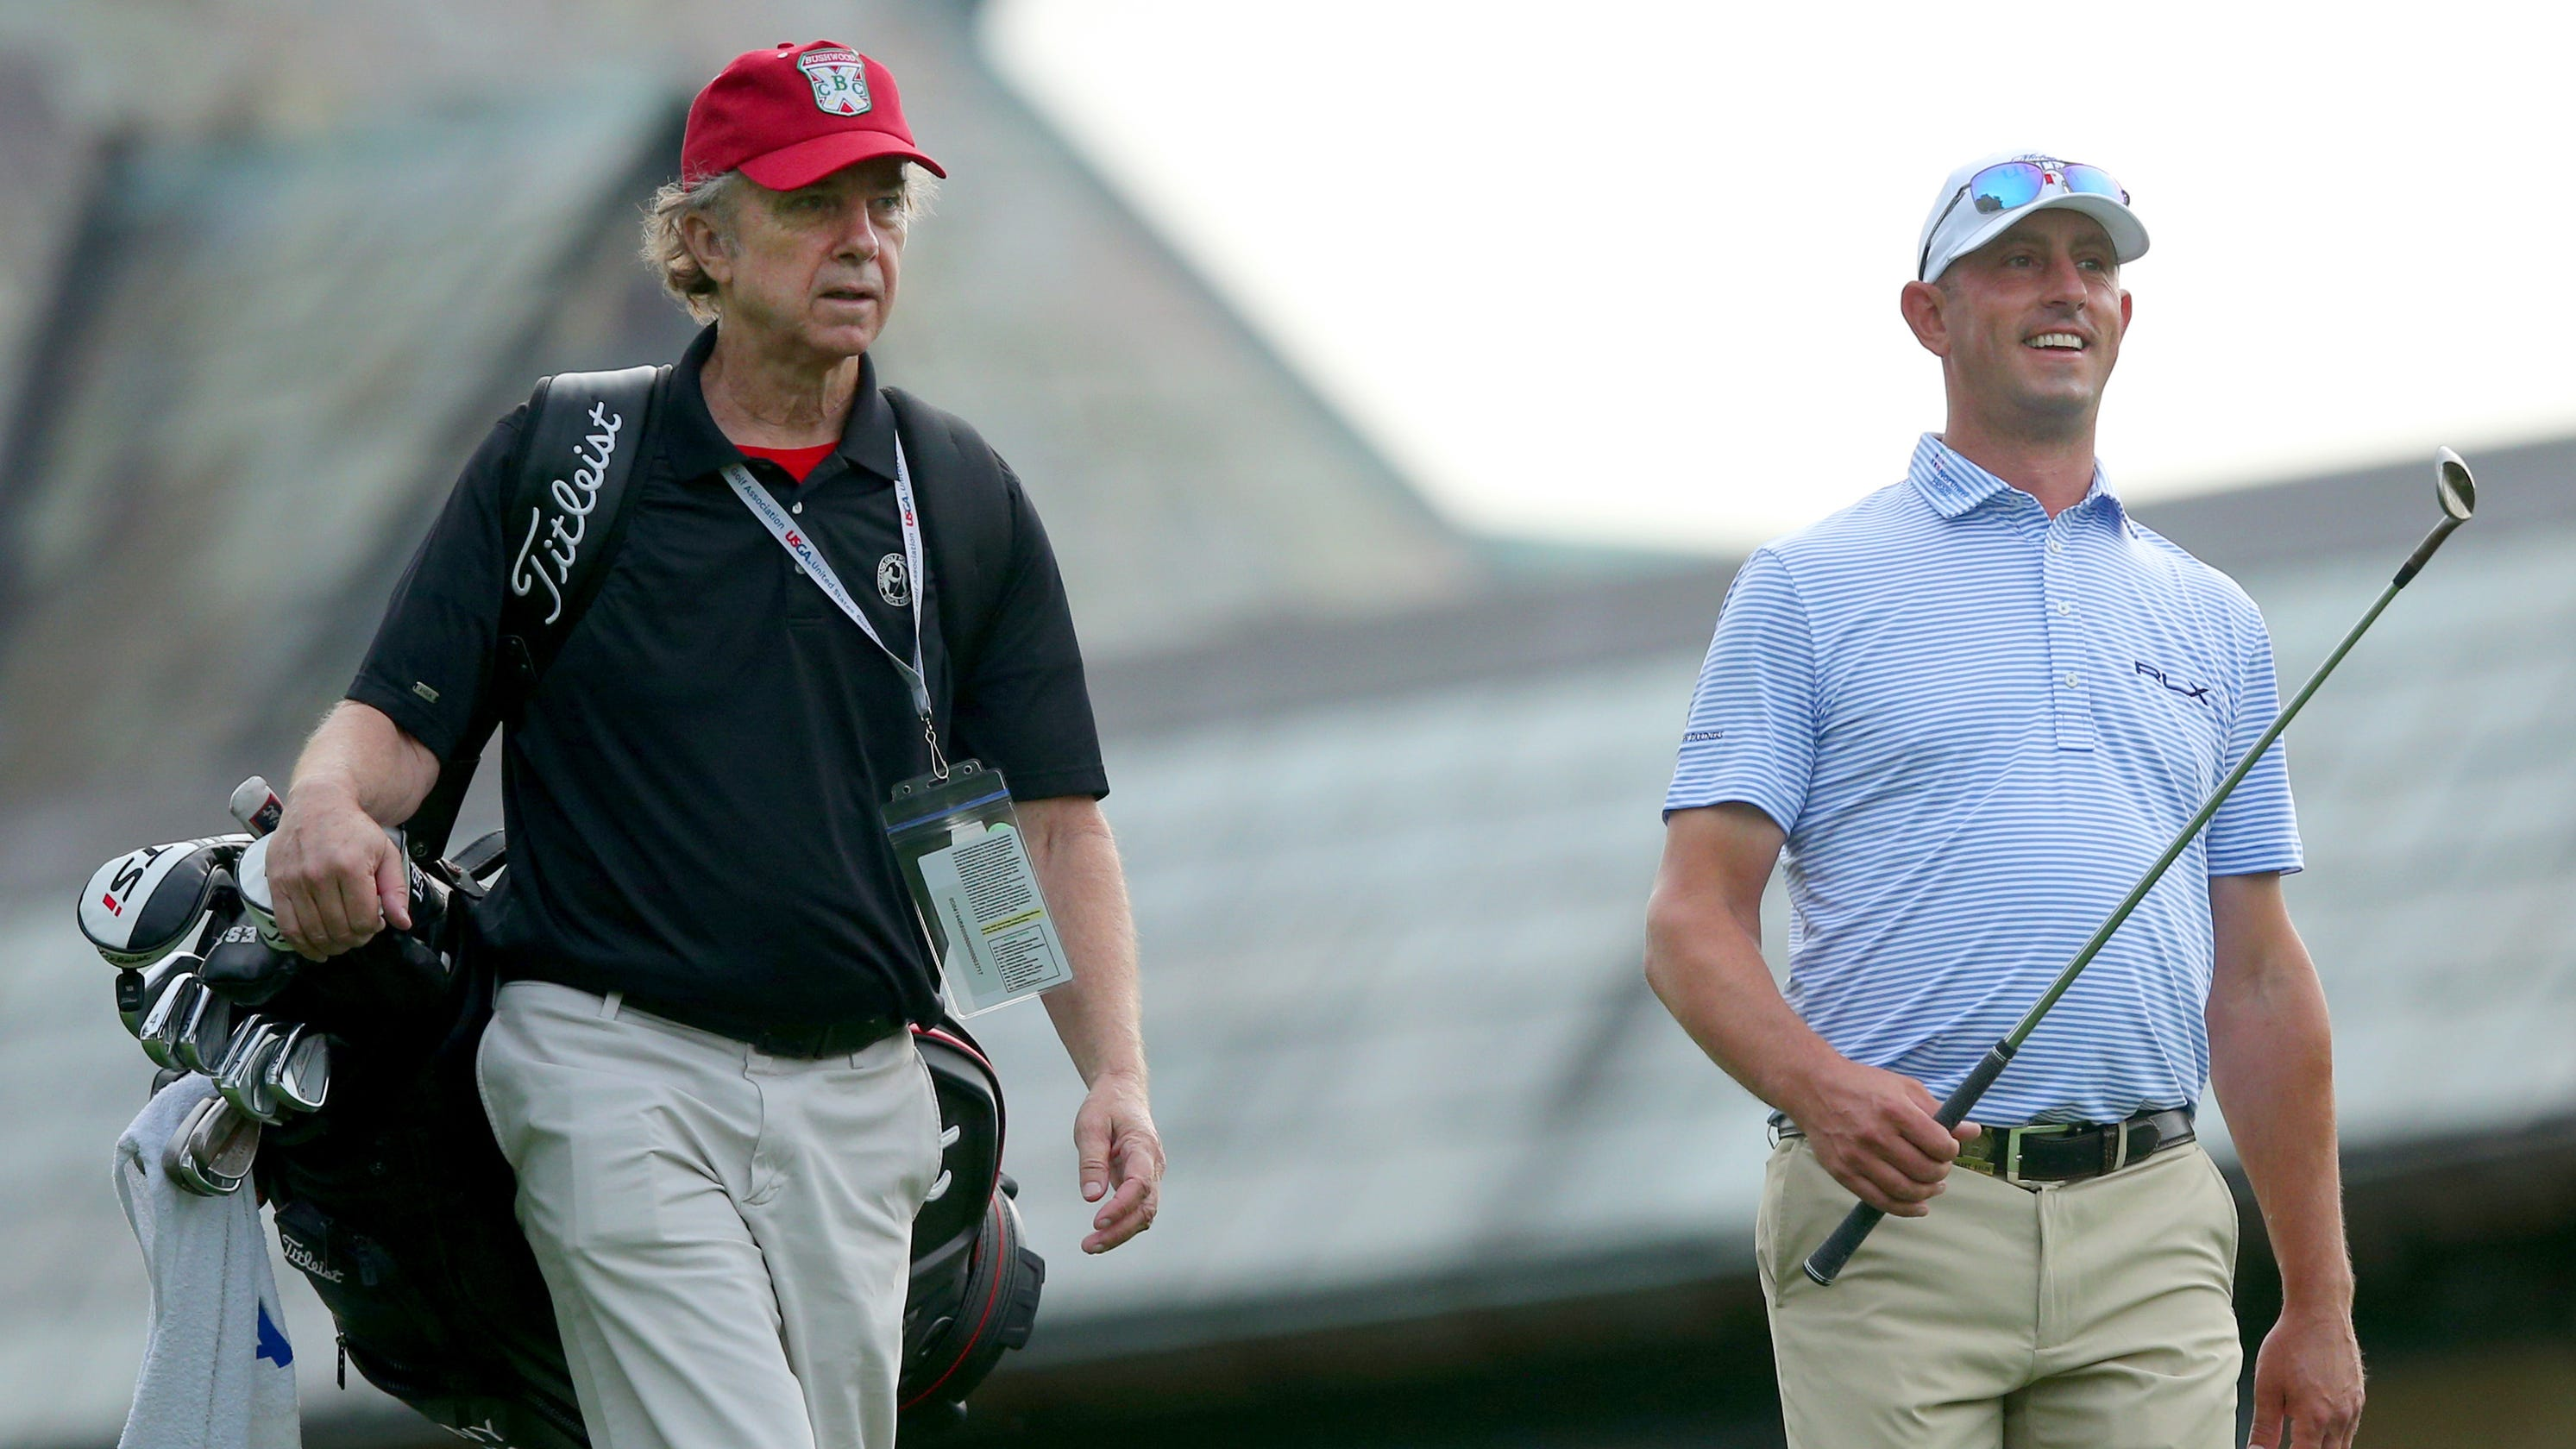 'Caddyshack' star Michael O'Keefe on bag for U.S. Open practice round